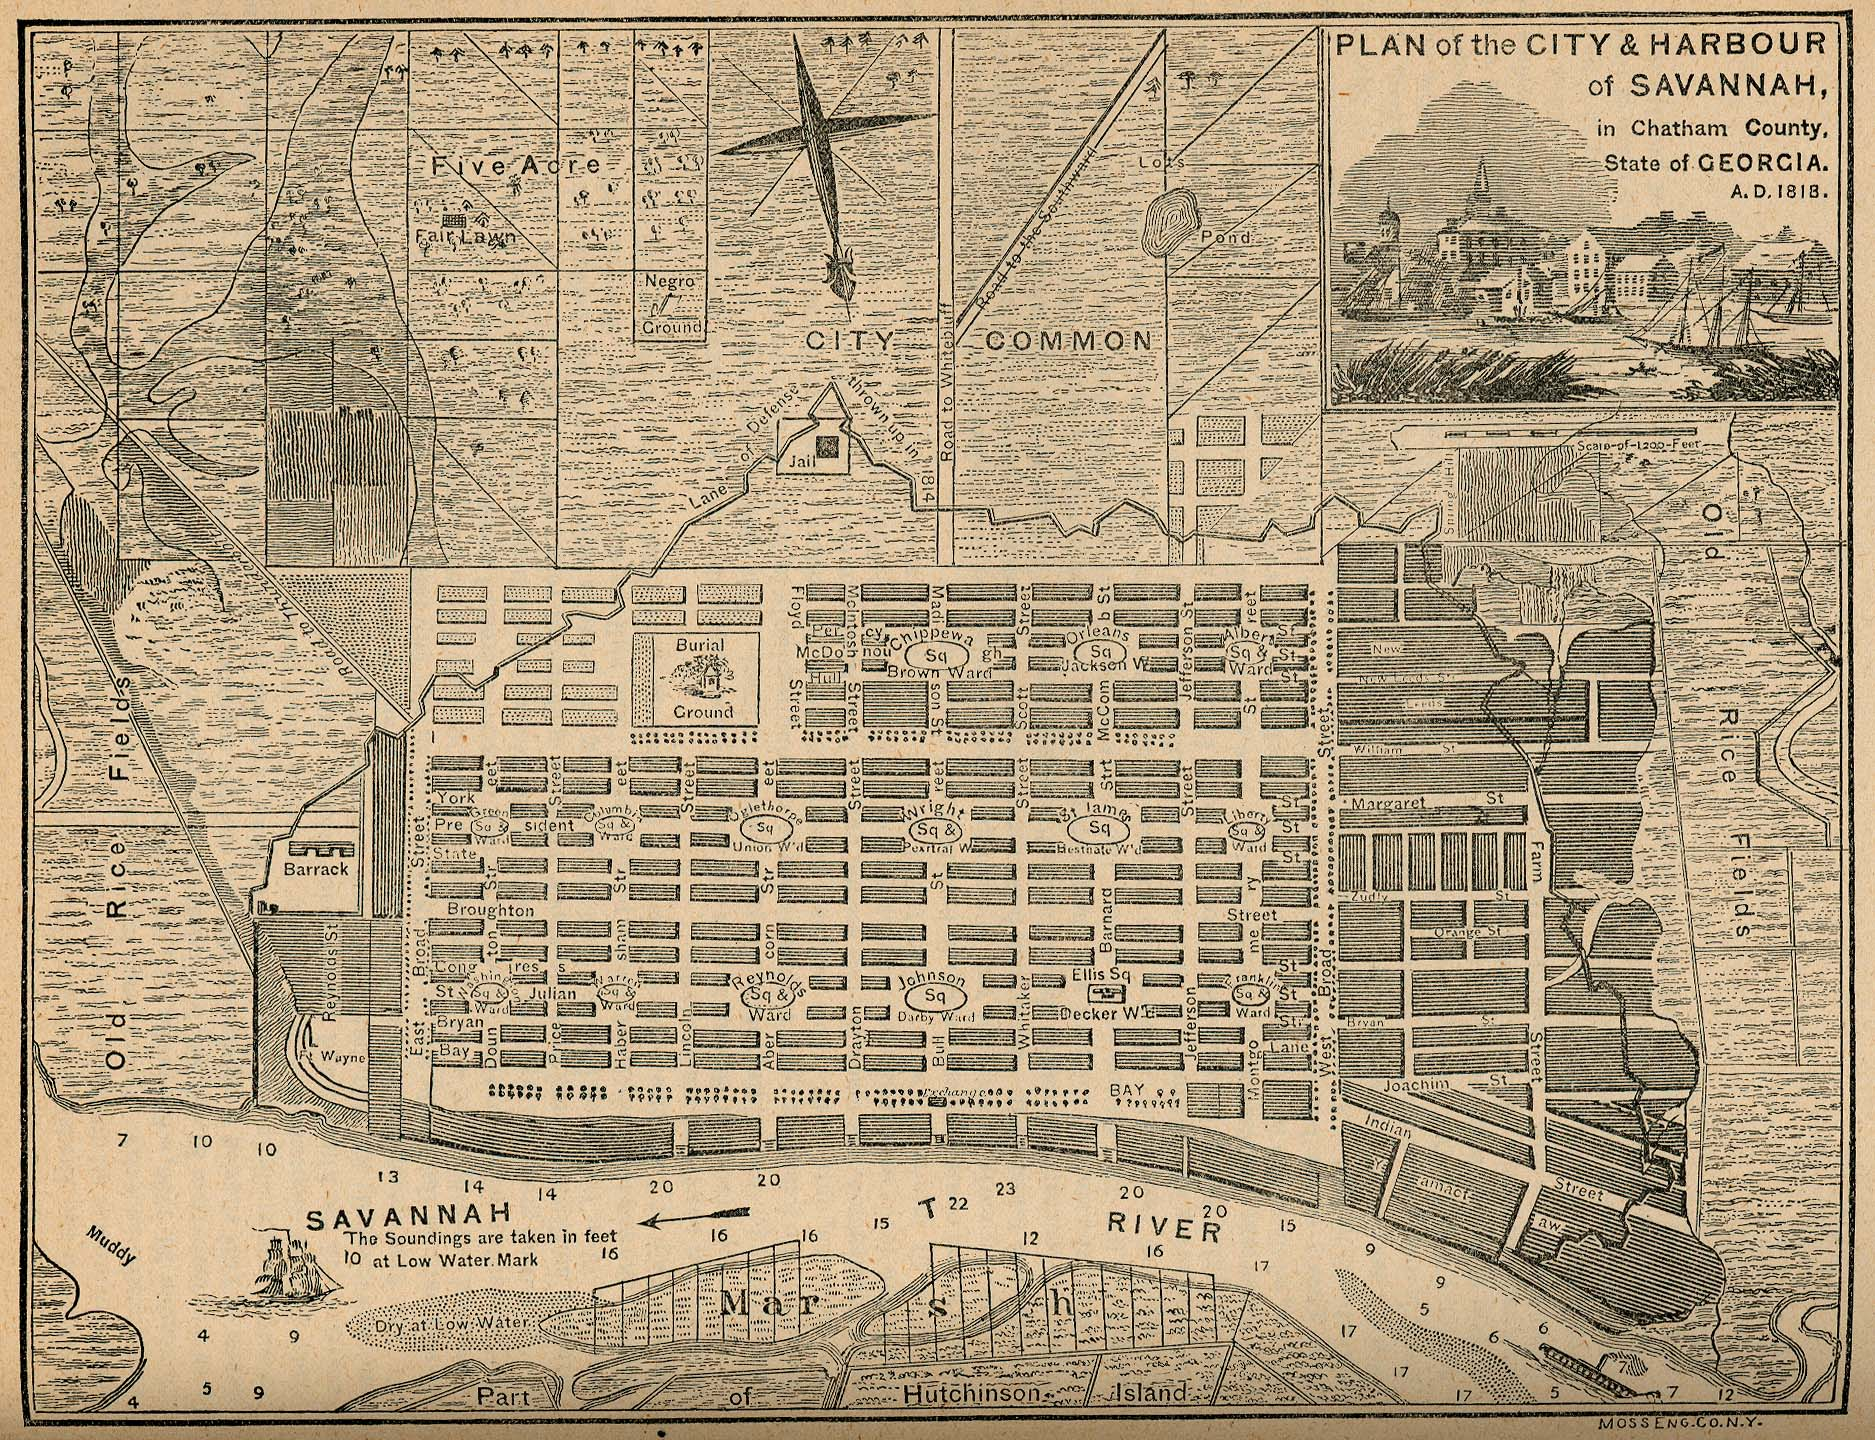 Savannah, Georgia, map of 1818 showing continuation of the ward design with minor modifications. Oglethorpe originally laid out six wards in Savannah. The design proved remarkably adaptable as the city grew, and city officials perpetuated the same basic model for more than a century. Ultimately, twenty-four wards were laid out in general accordance with the original design, filling most of the original square-mile town common. The City of Savannah has preserved the ward design within its National Historic Landmark District.